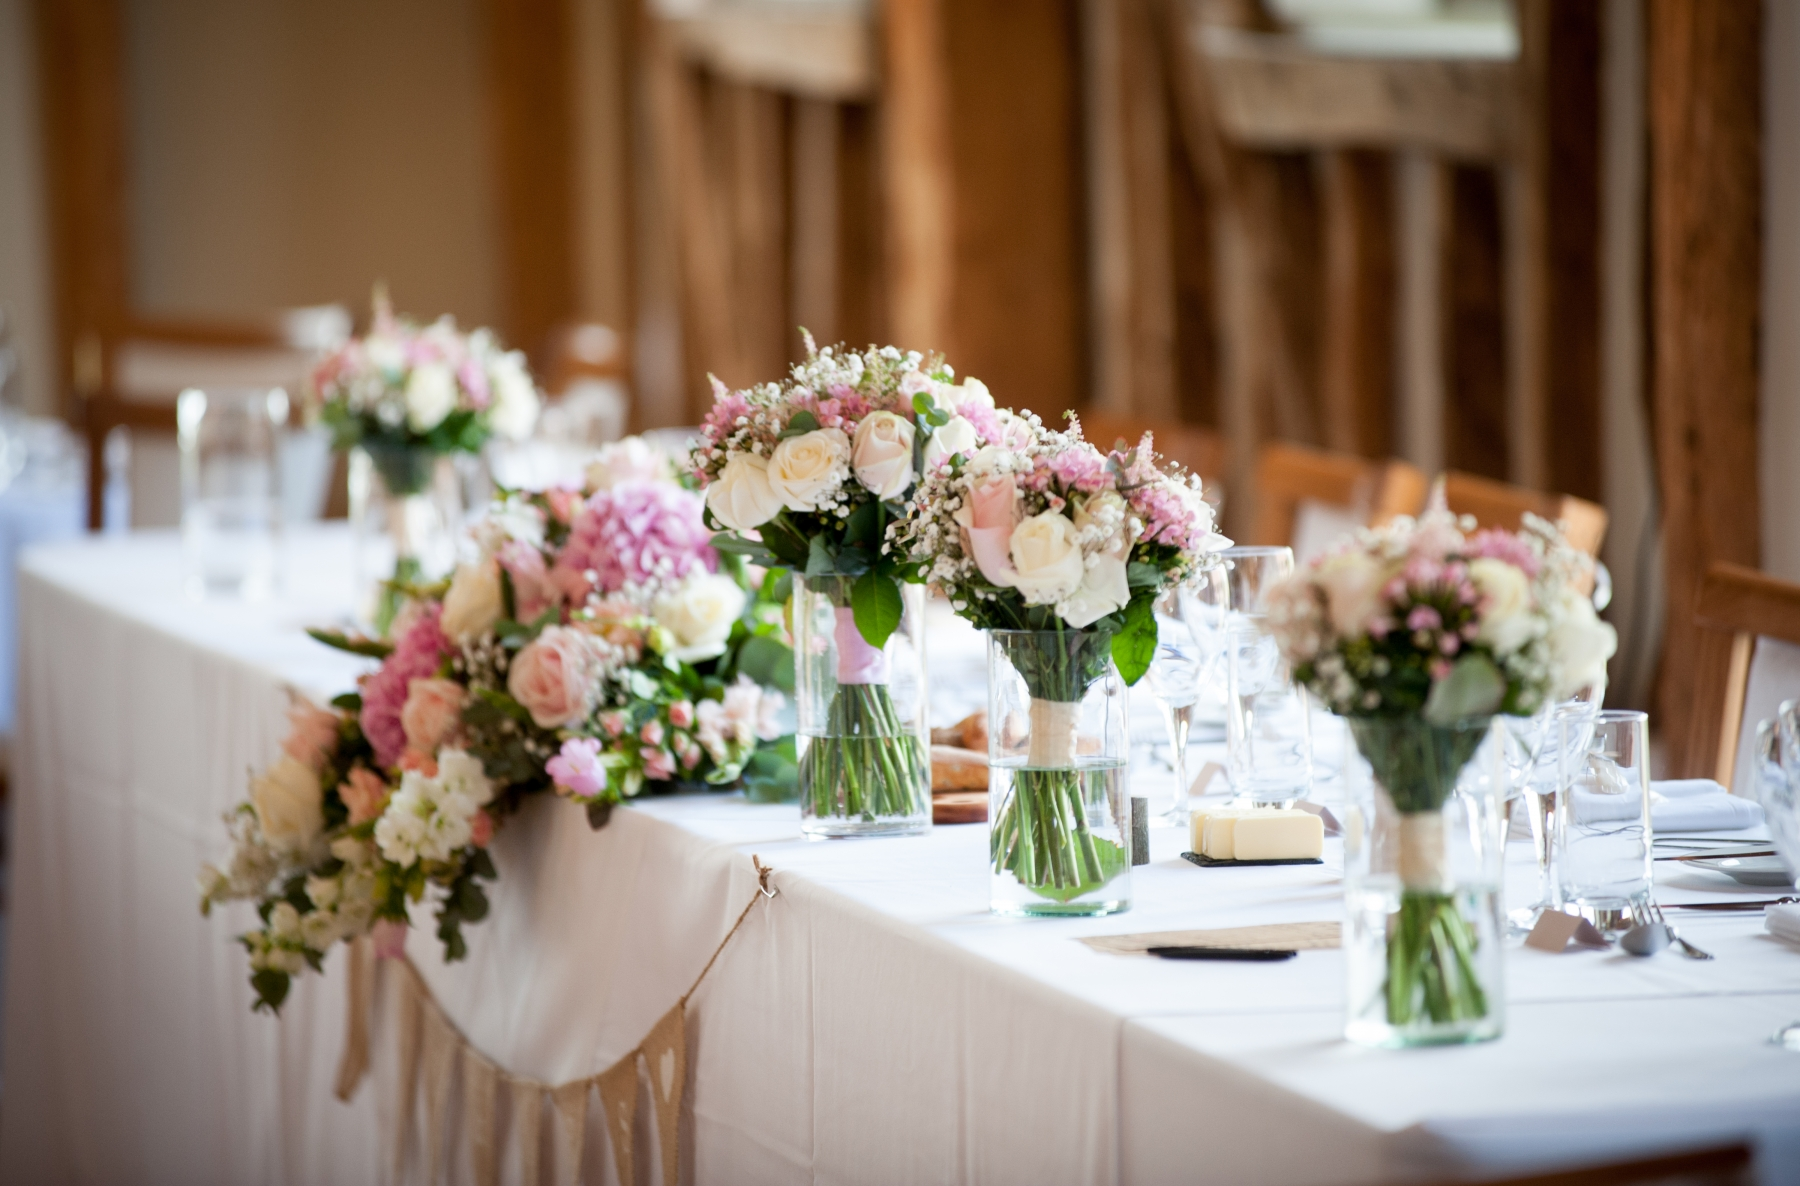 Becki and Matt August 2018 - Top table and Bridesmaids Bouquets